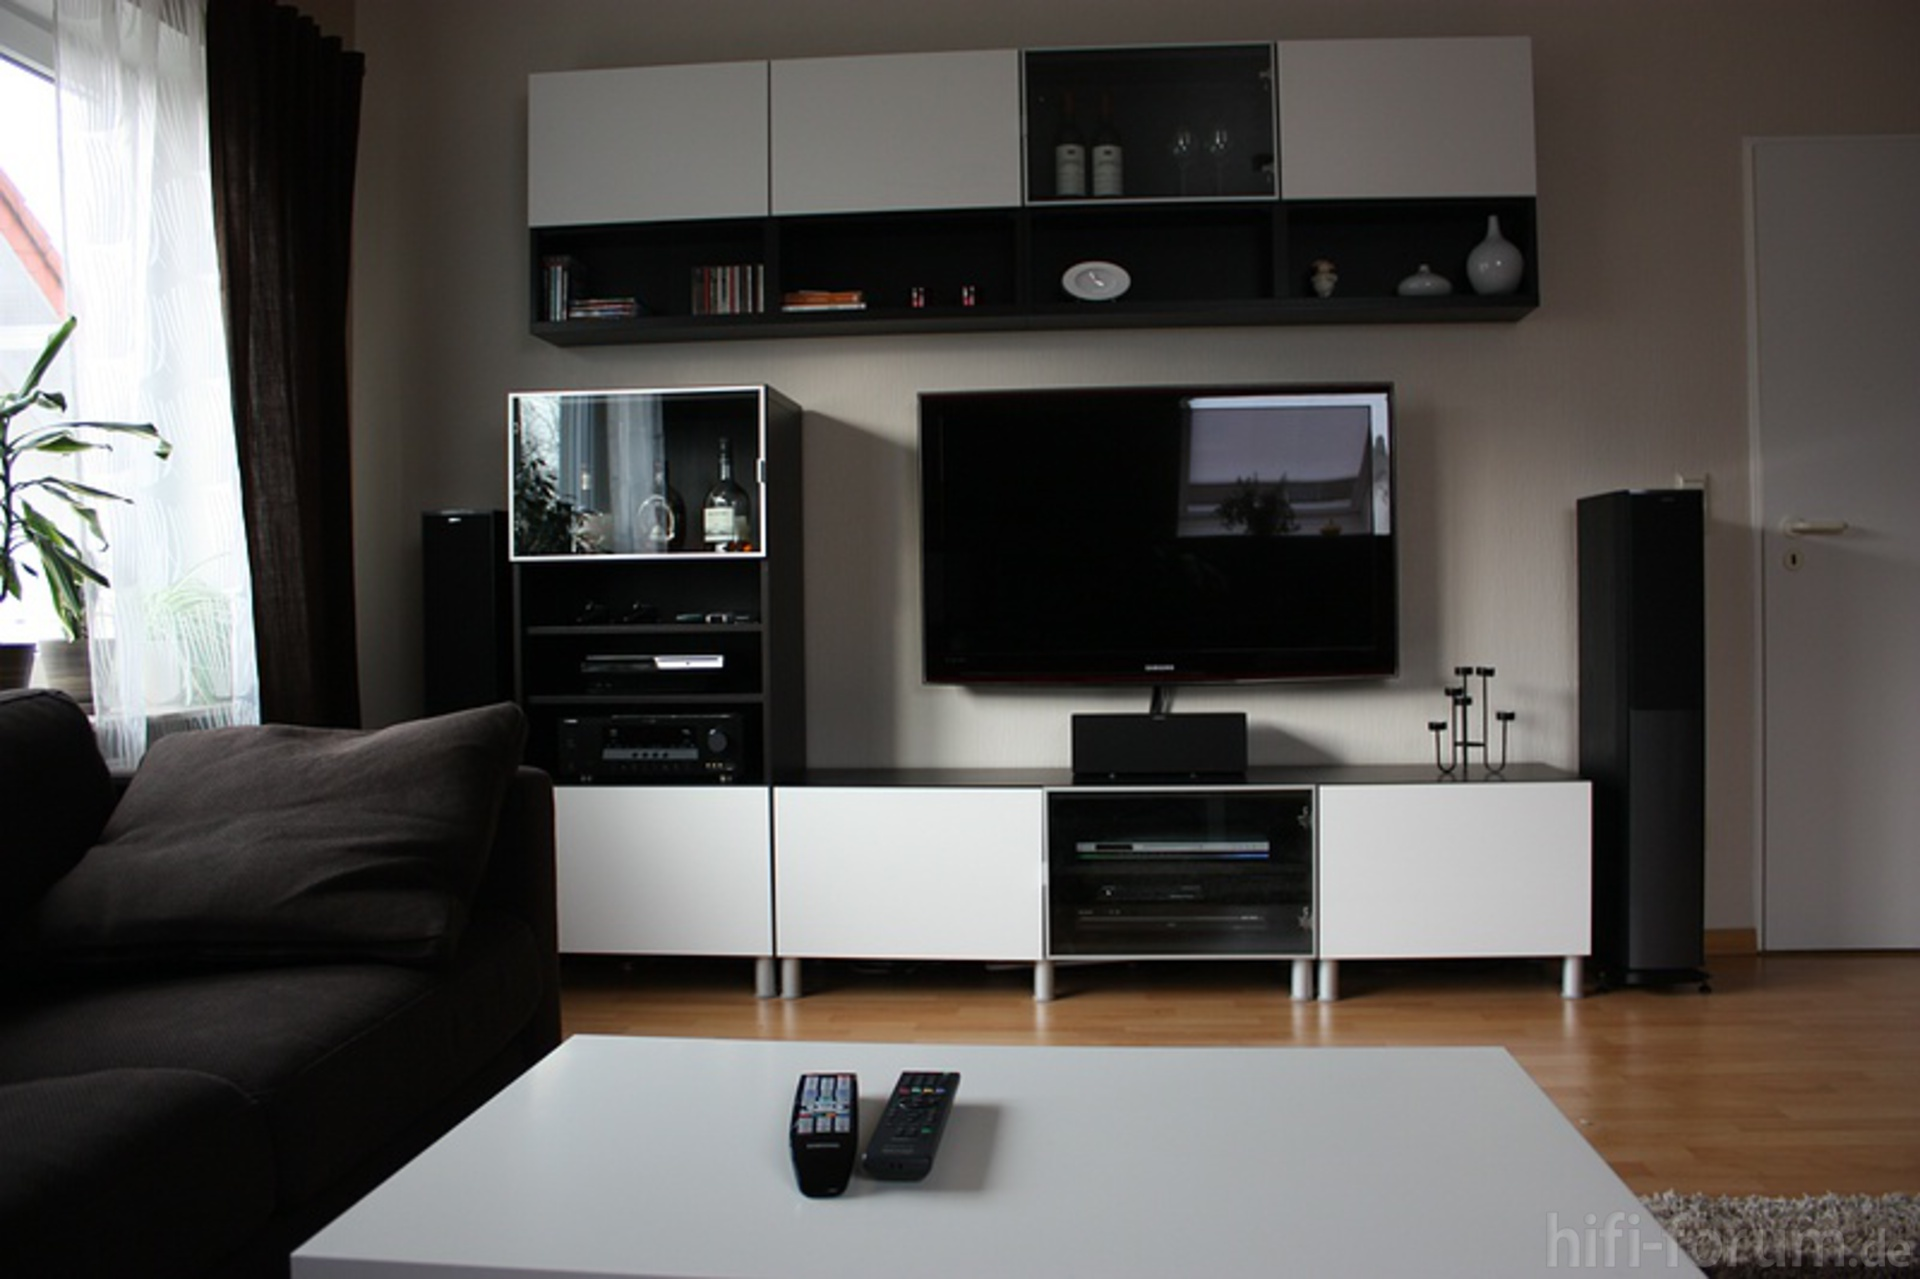 neues wohnzimmer 6 besta heimkino ikea samsung surround wohnzimmer yamaha hifi forum. Black Bedroom Furniture Sets. Home Design Ideas